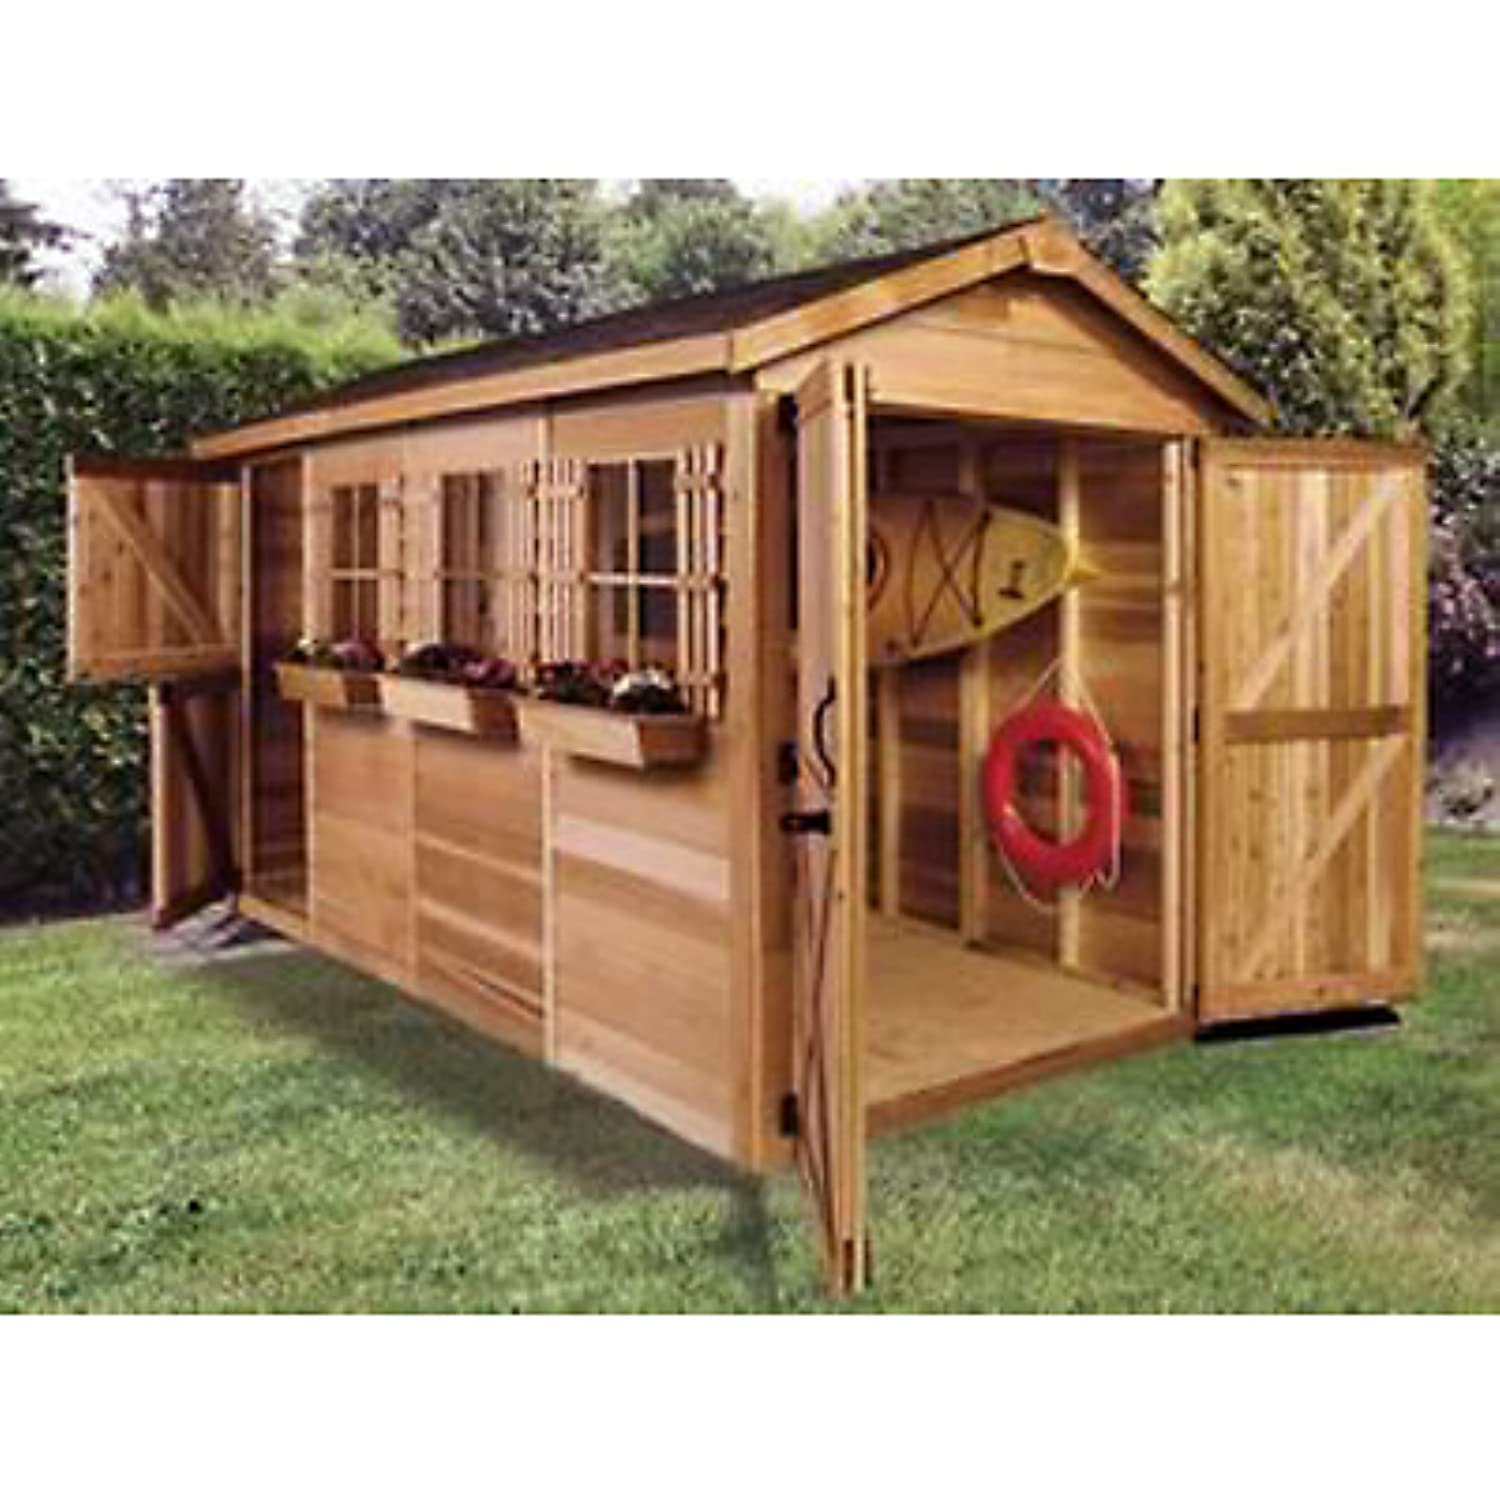 amazoncom shed 16 x 8 ft boathouse garden shed storage sheds garden outdoor